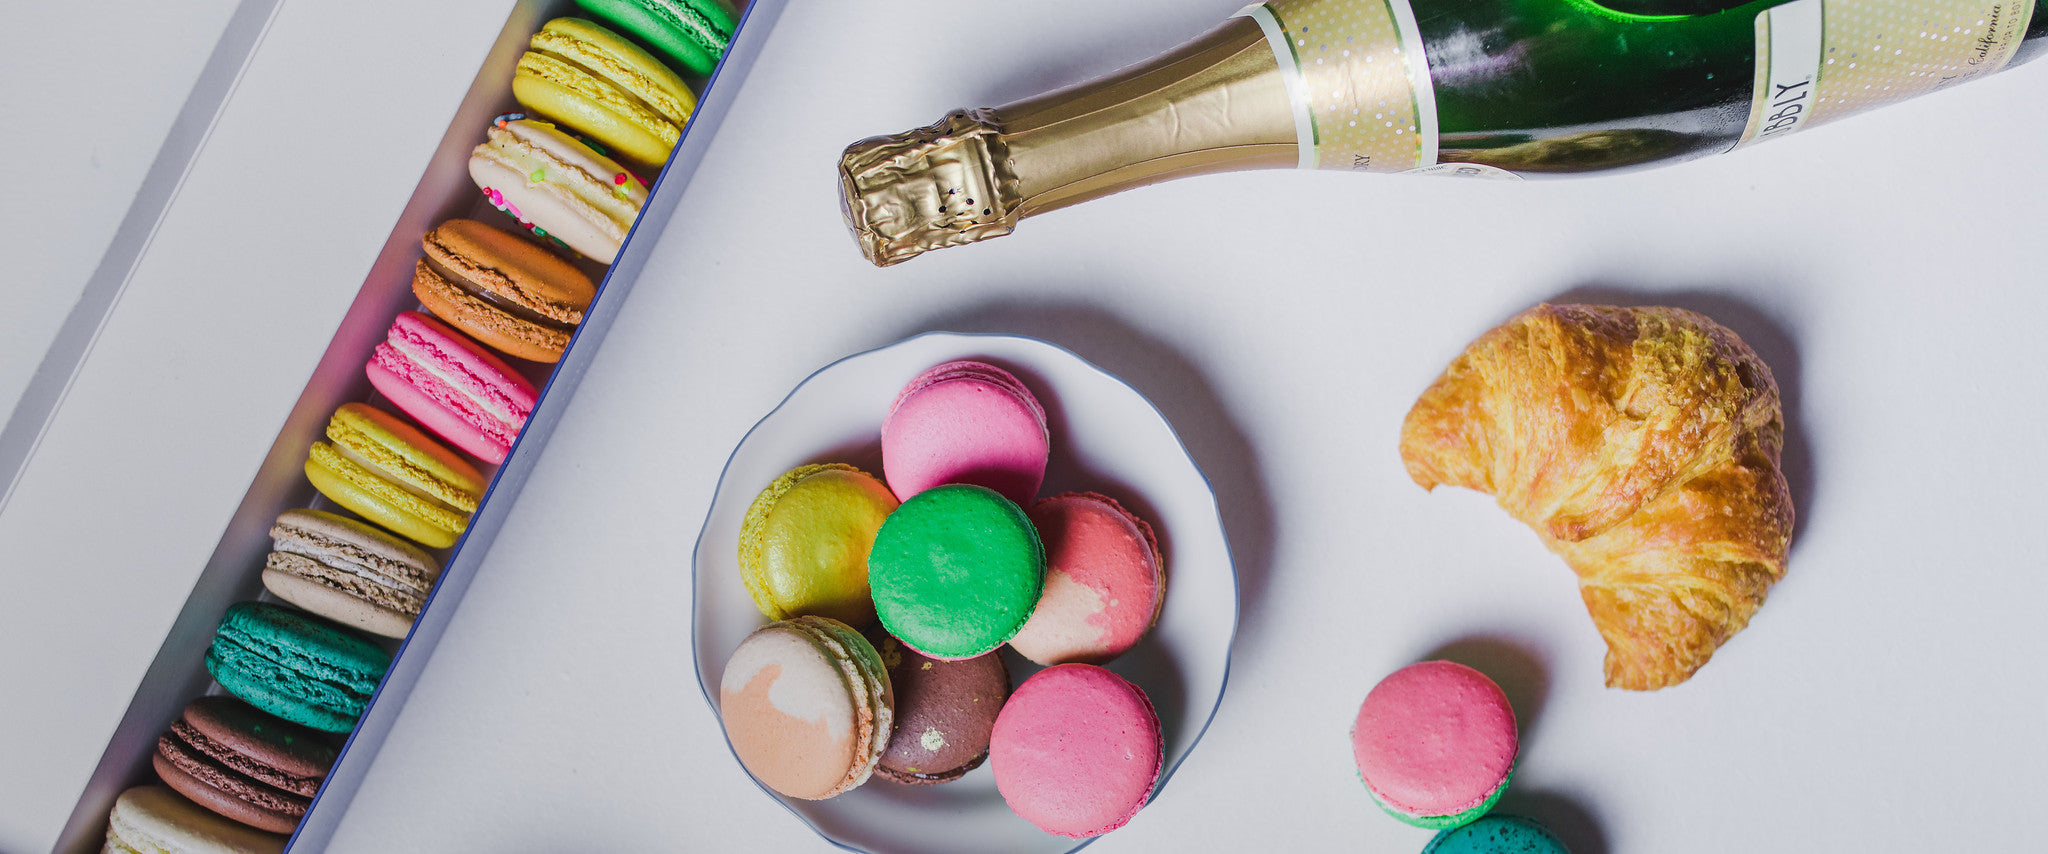 Macarons Subscription: How it works